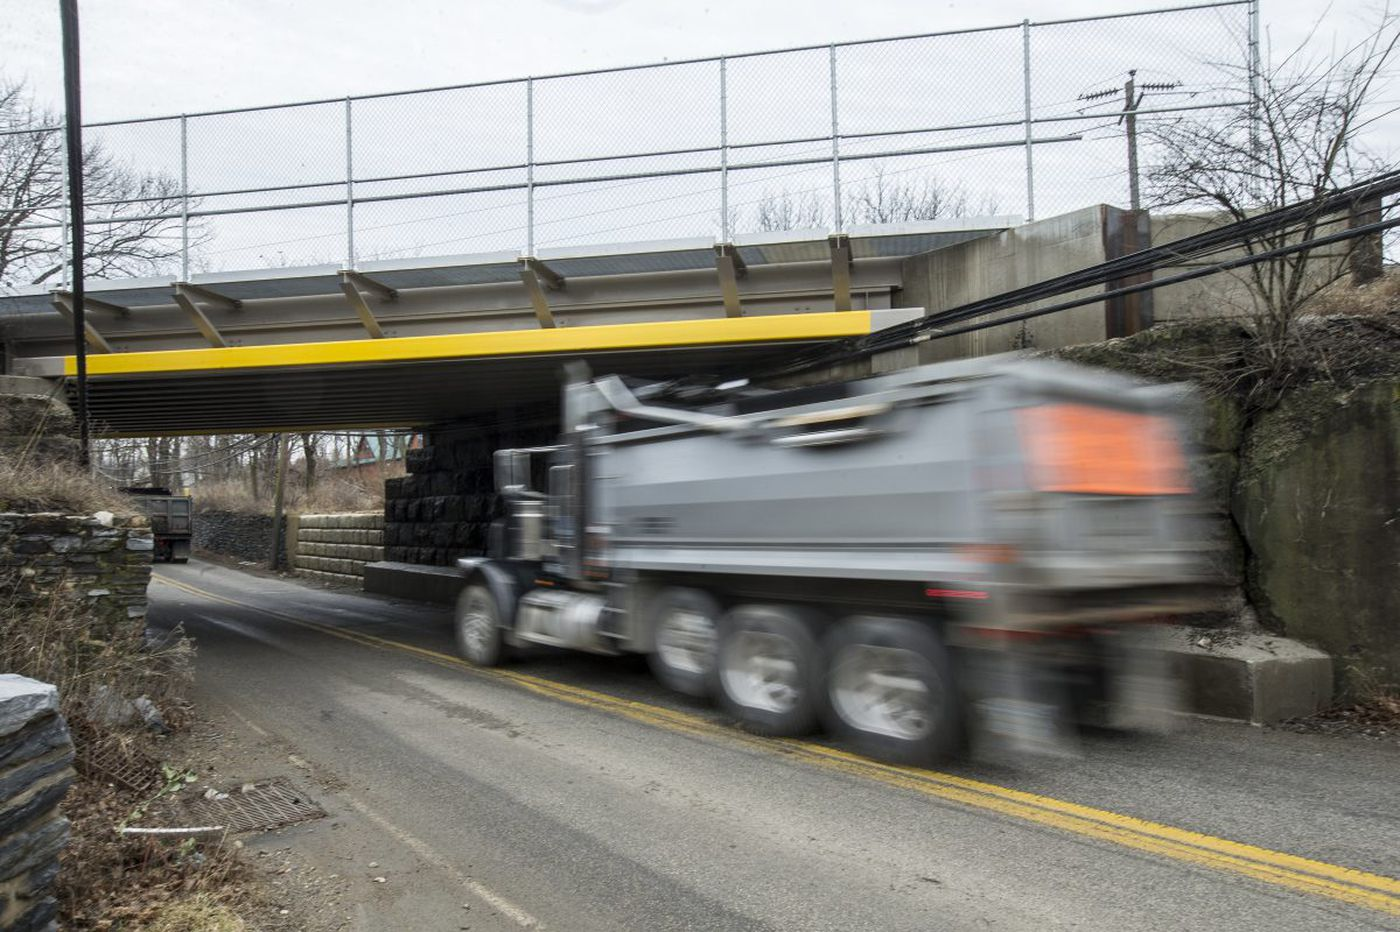 In Philly suburbs, truck drivers - often using GPS apps - smash into bridges, causing accidents and snarling traffic